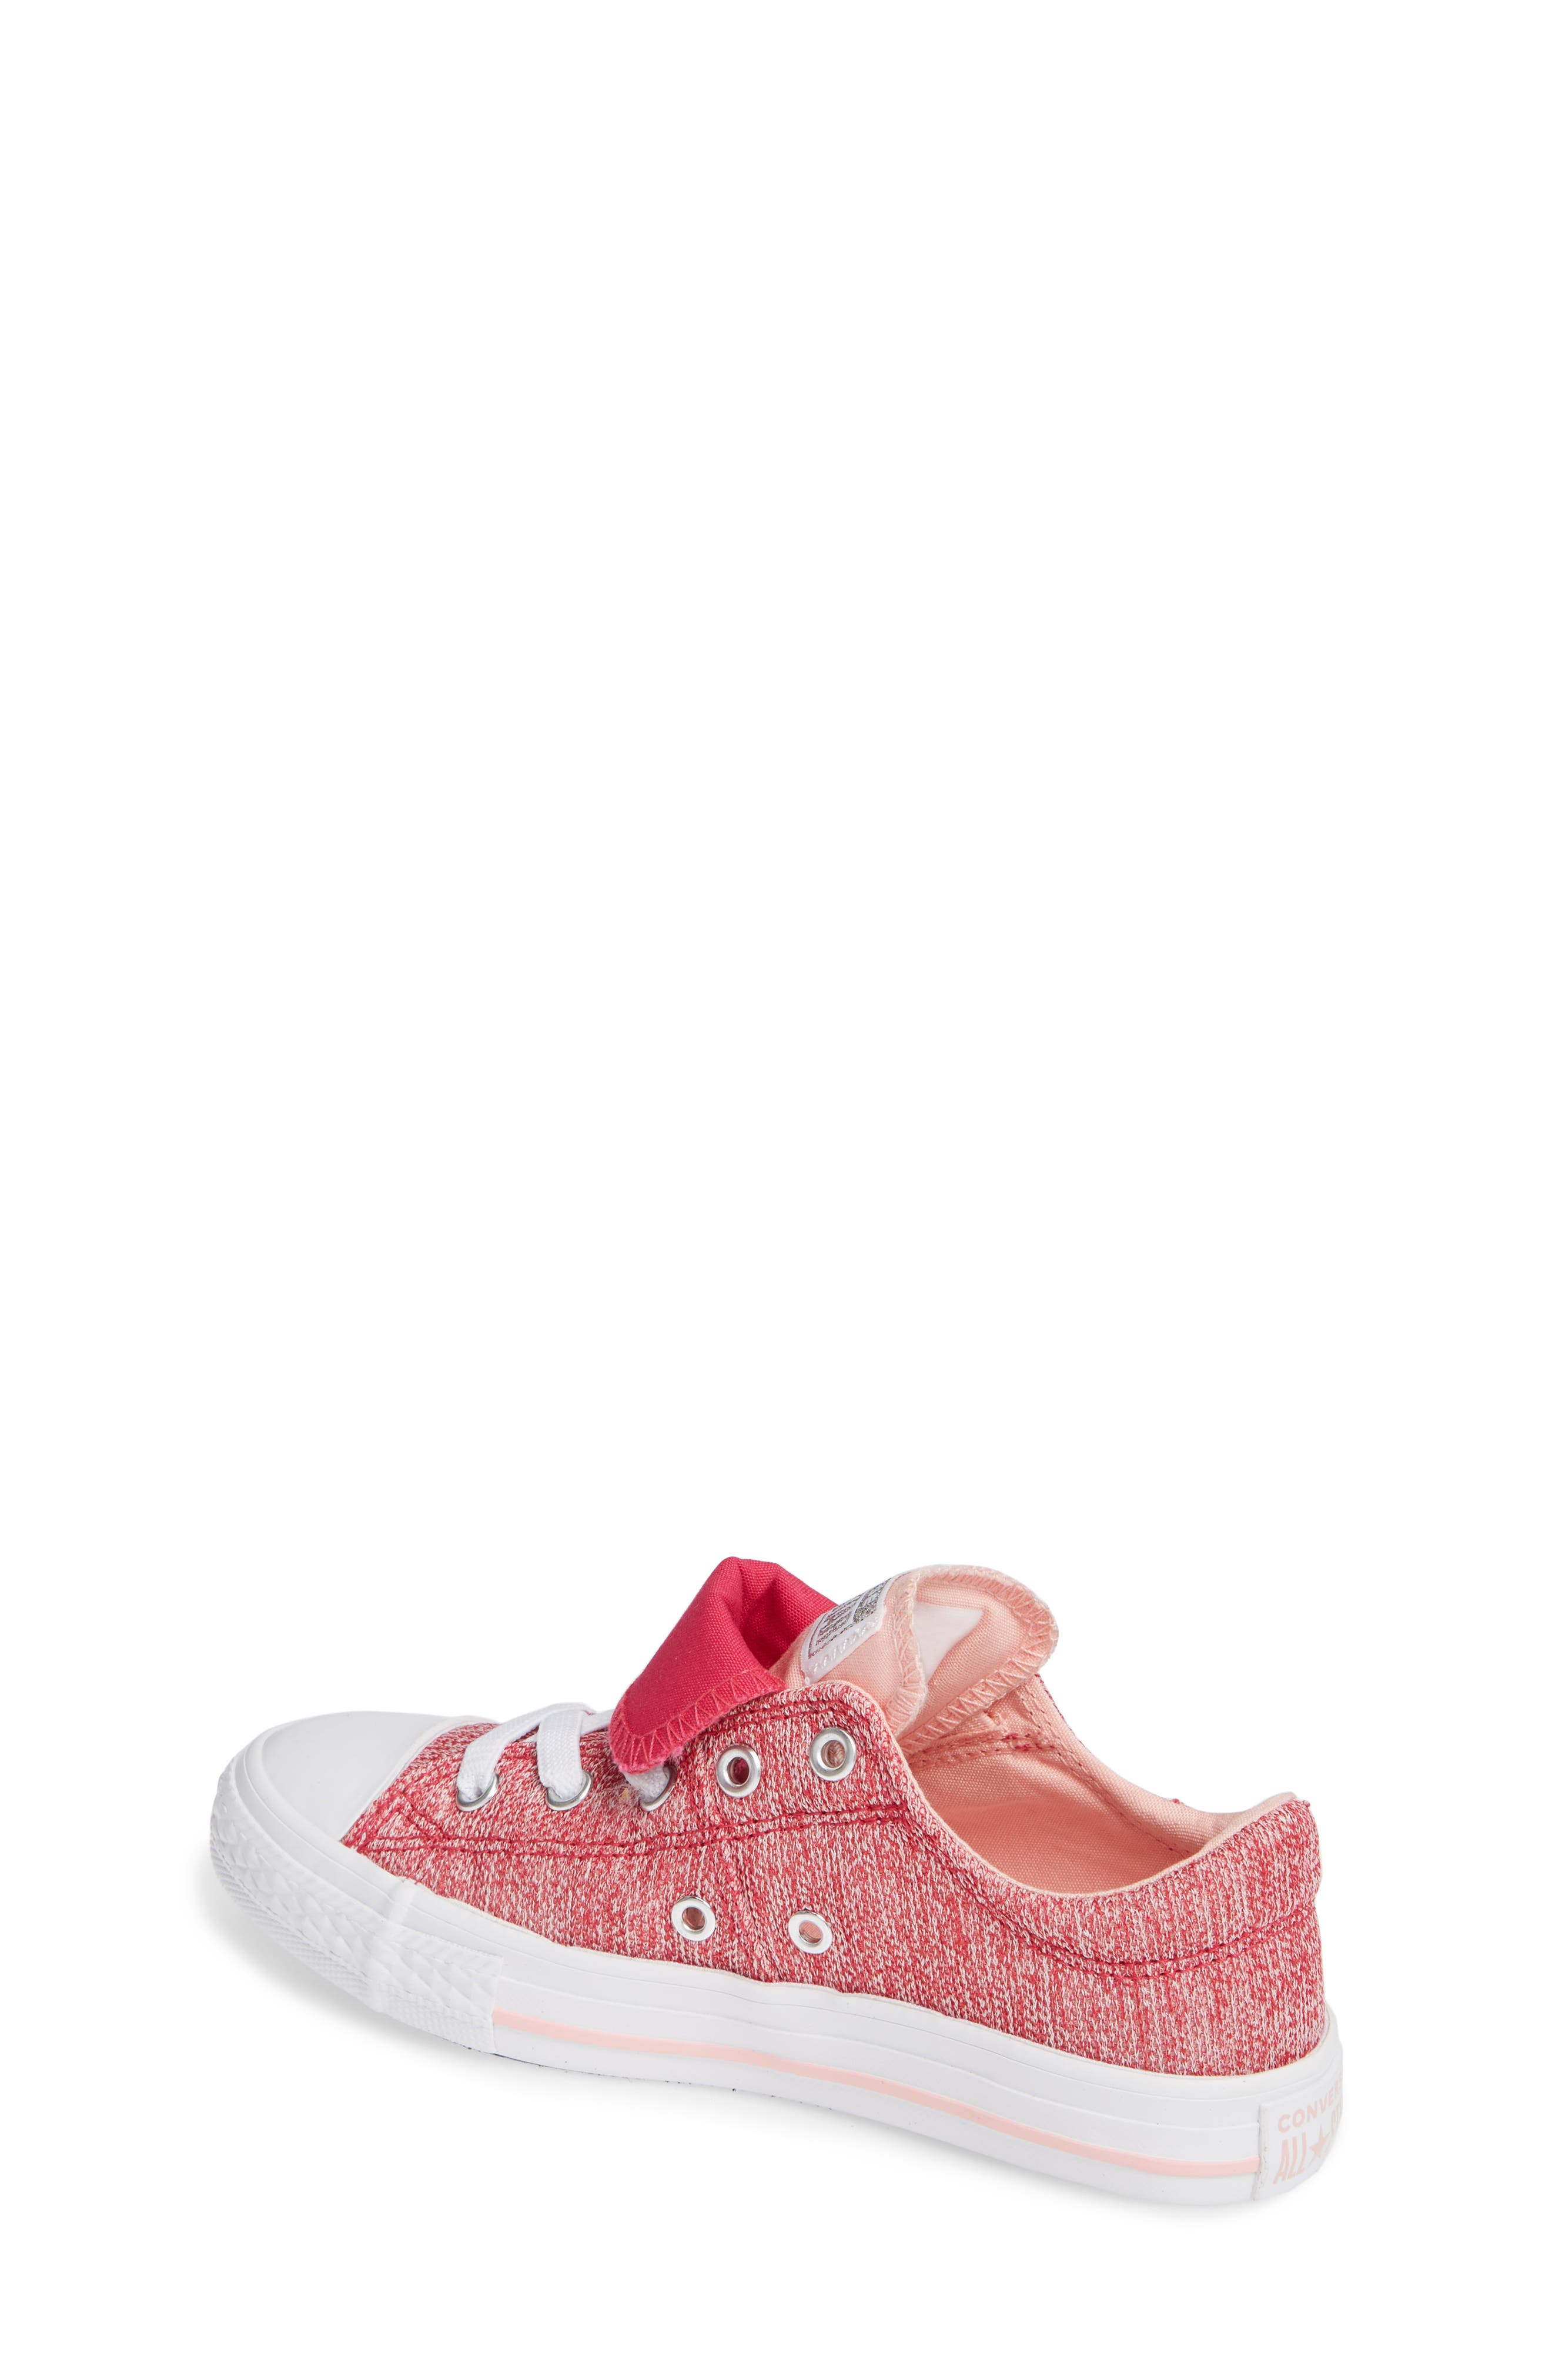 ,                             Chuck Taylor<sup>®</sup> All Star<sup>®</sup> Maddie Double Tongue Sneaker,                             Alternate thumbnail 62, color,                             673